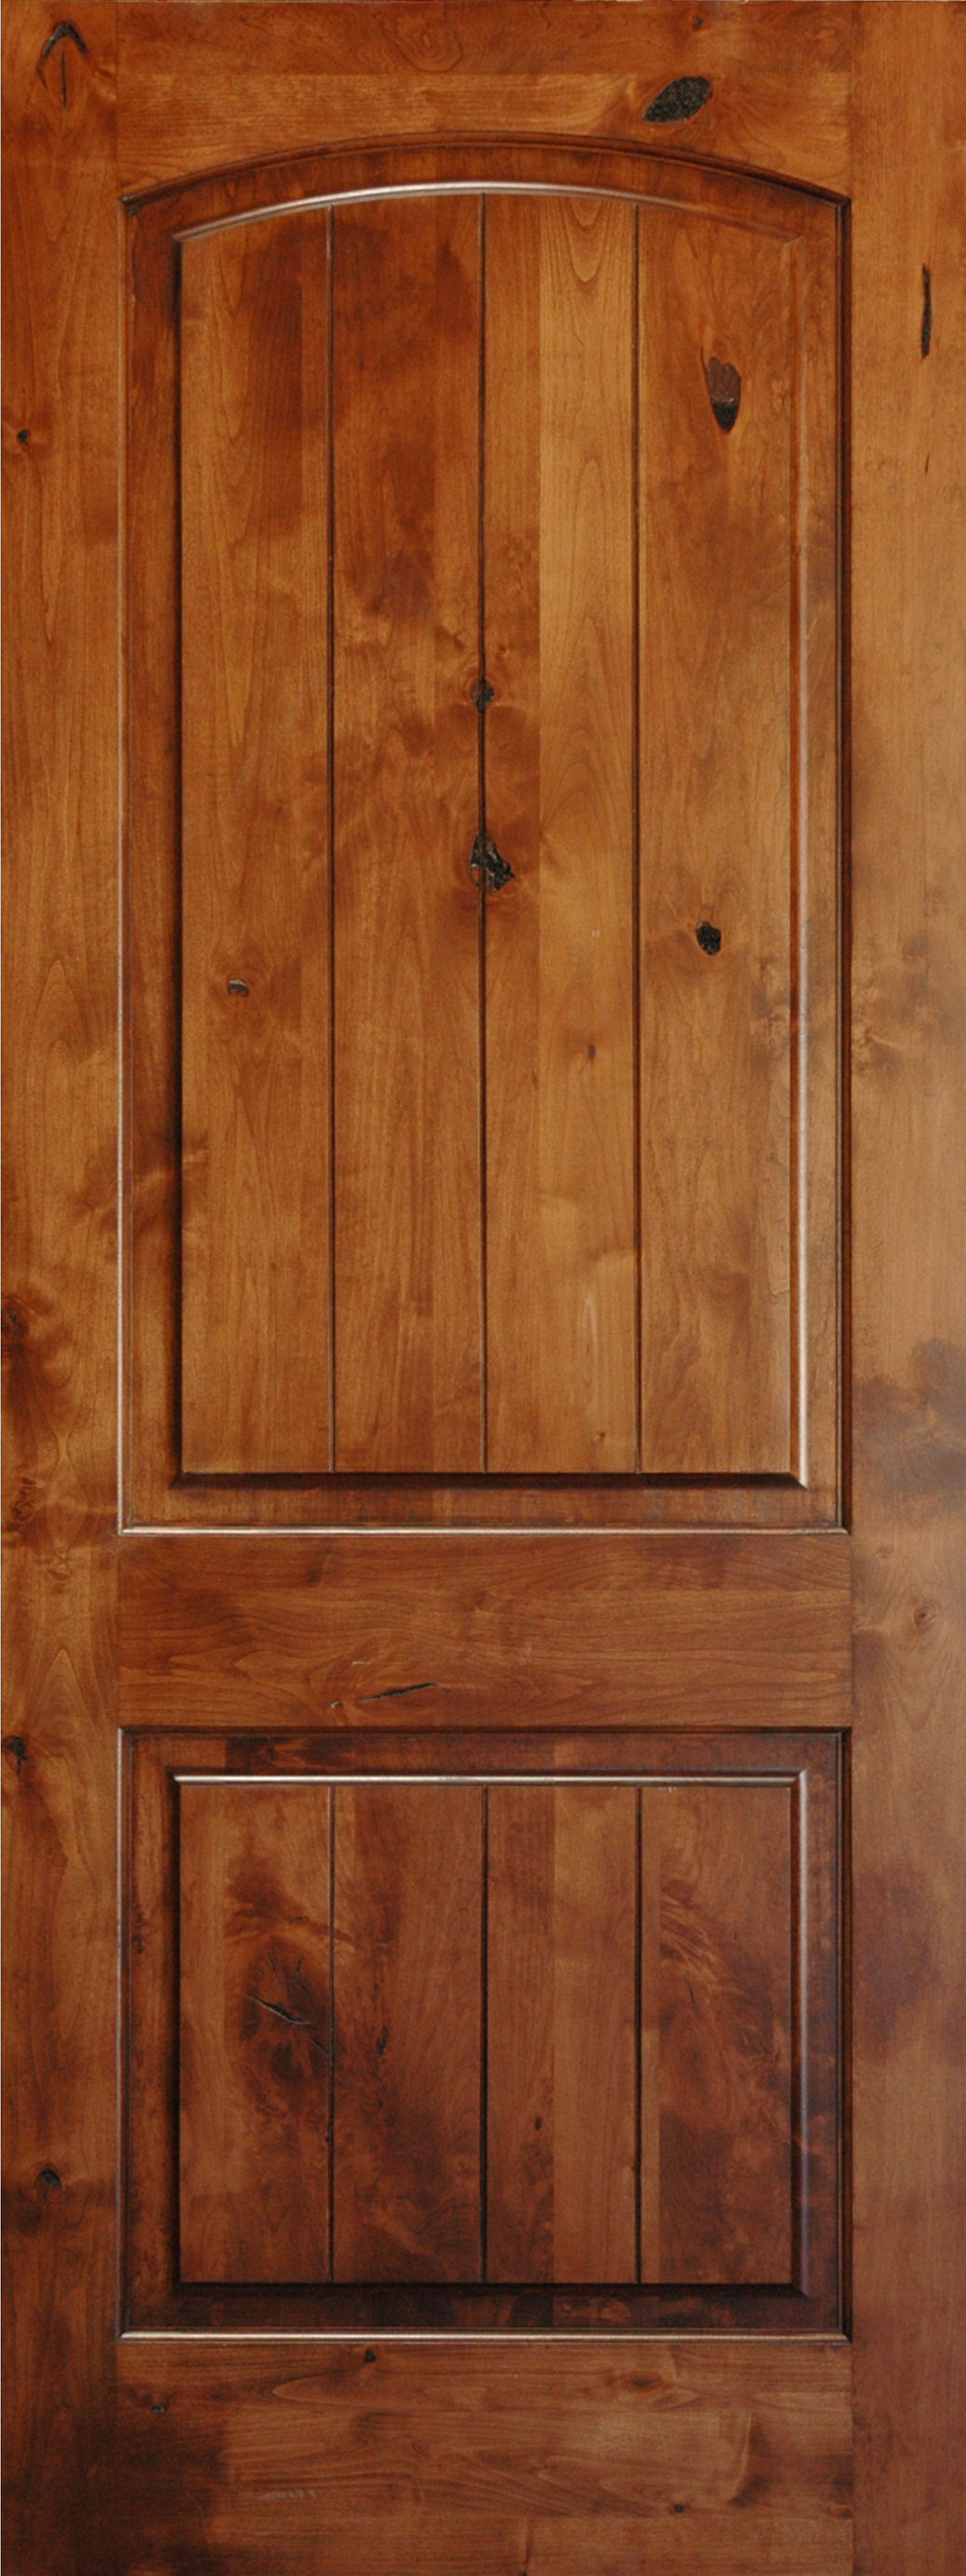 Knotty alder interior doors for Internal wooden doors